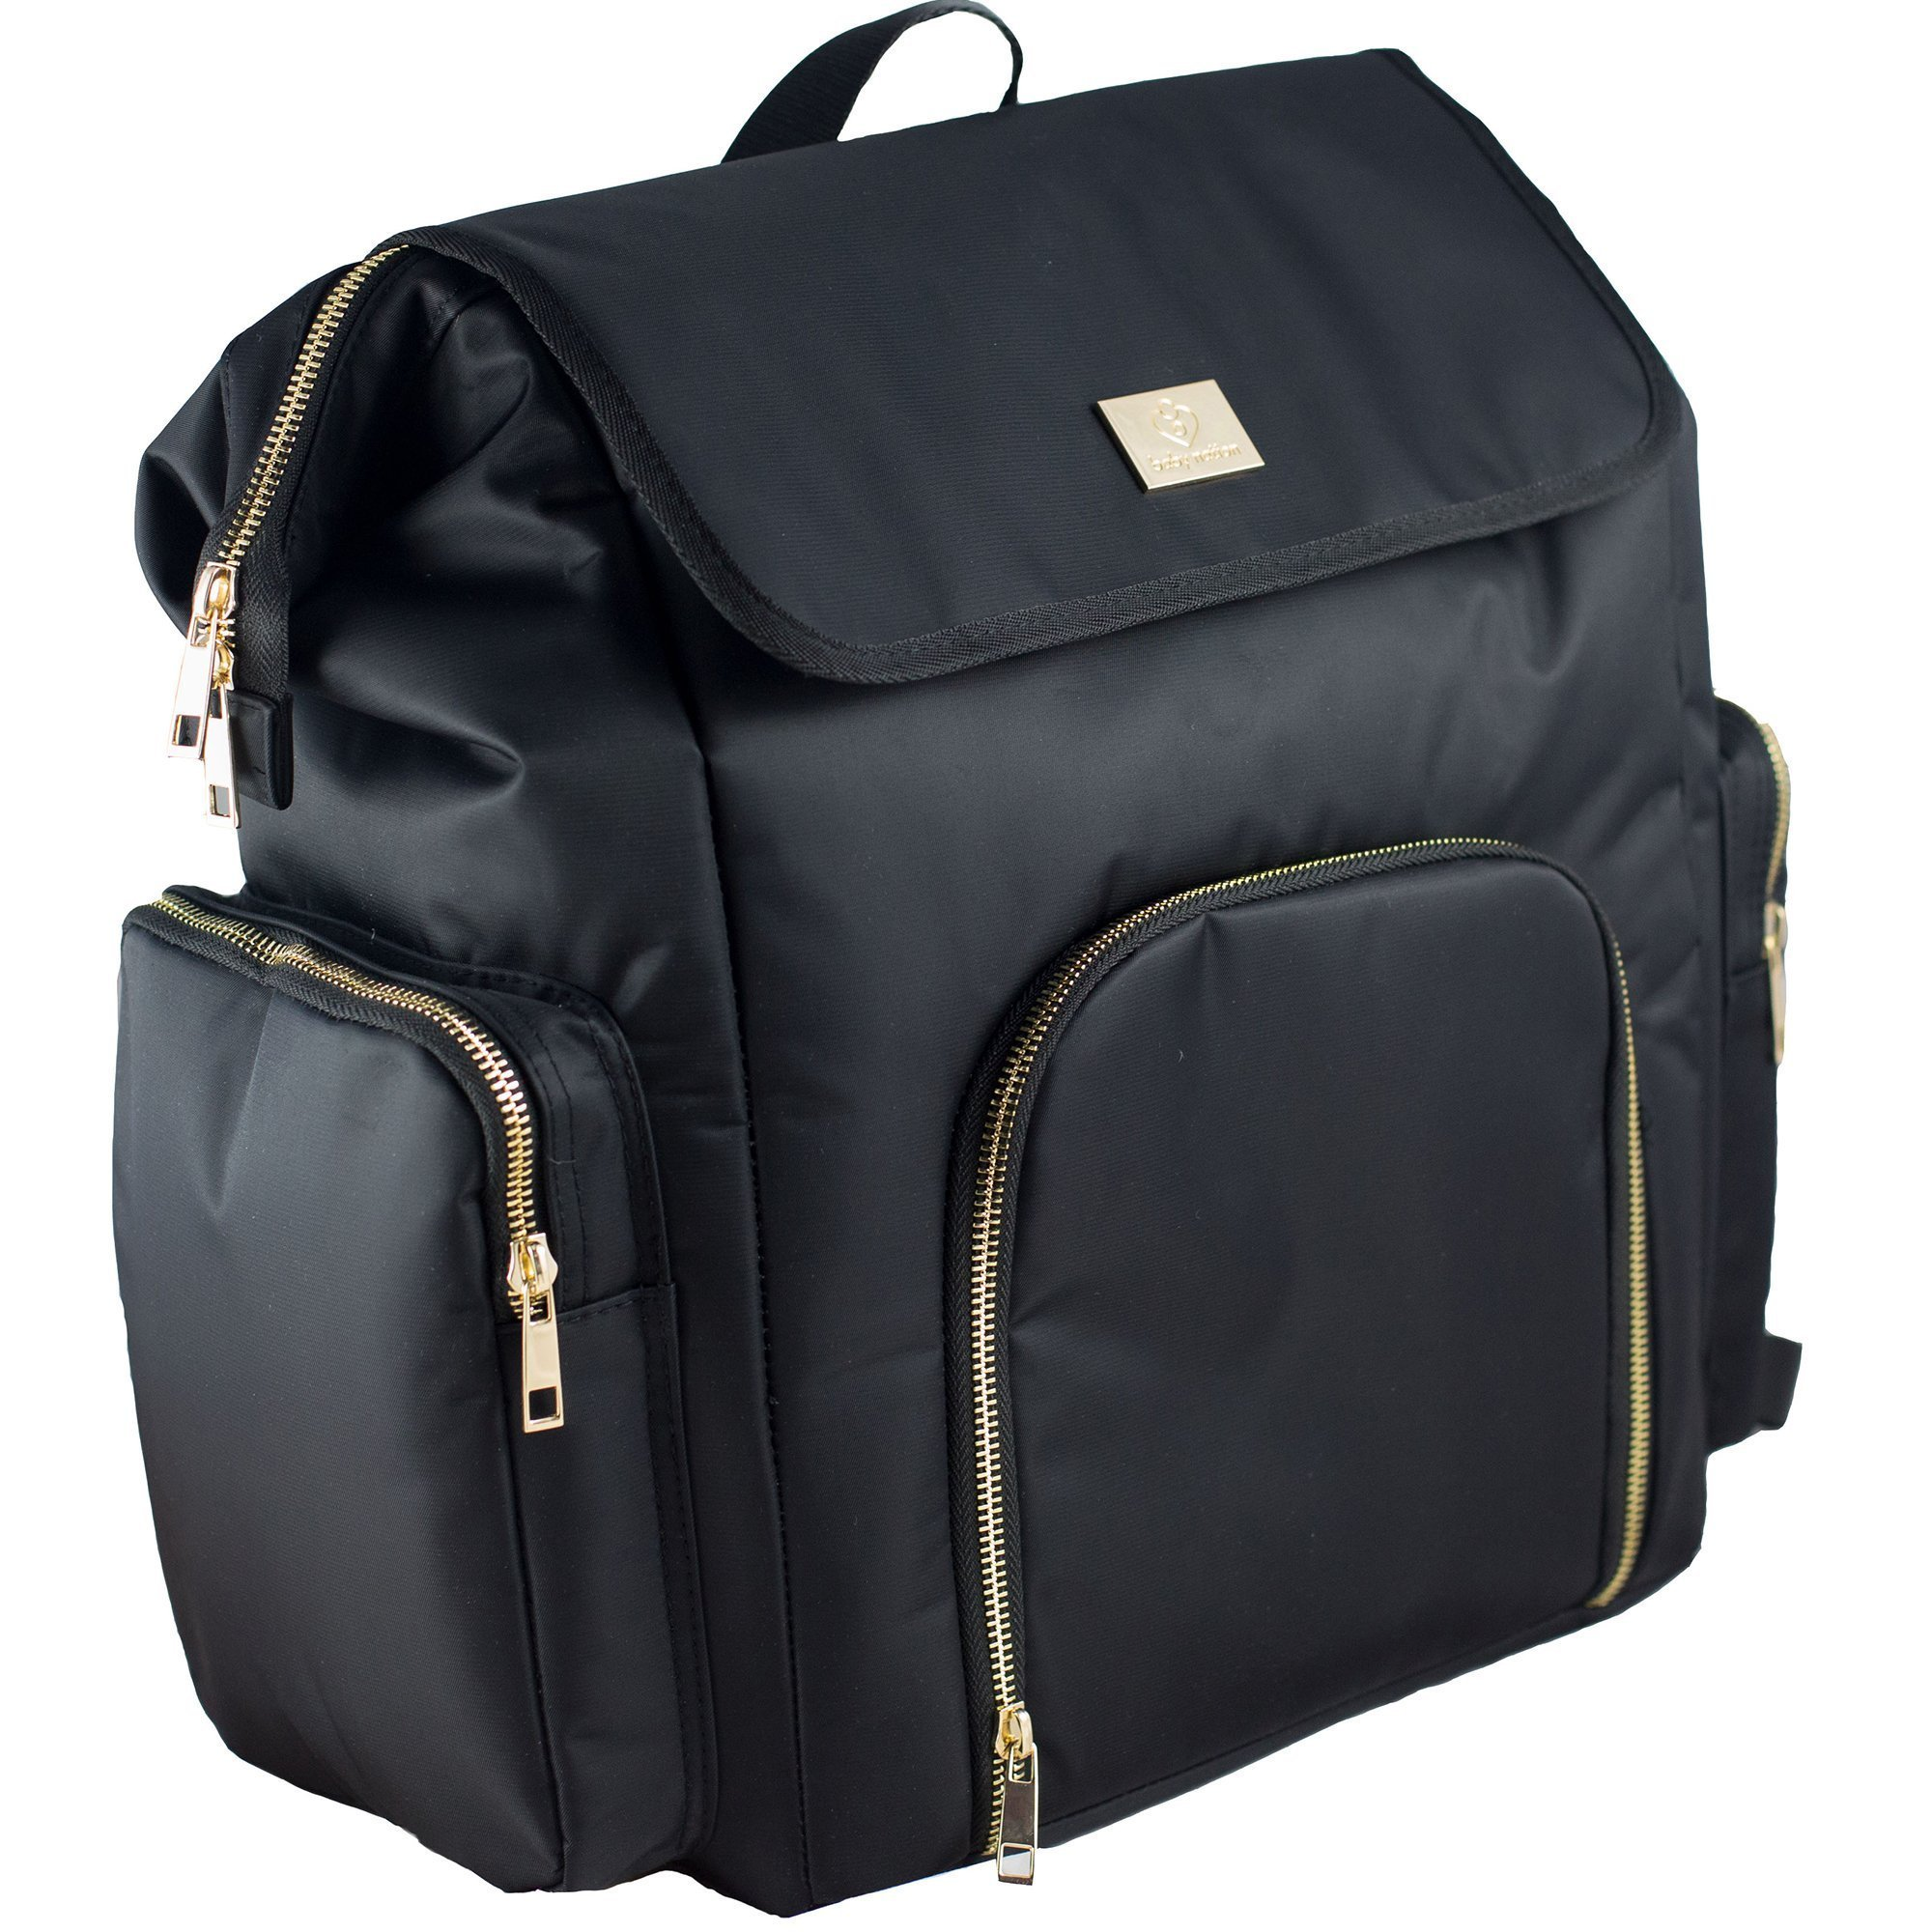 Breast Pump Backpack by The Baby Nation - Also Used as Diaper Bag - Fully Insulated and Super Comfy - Cooler Pockets Great for Work or Travel - Fits All Major Brands Including Medela and Spectra